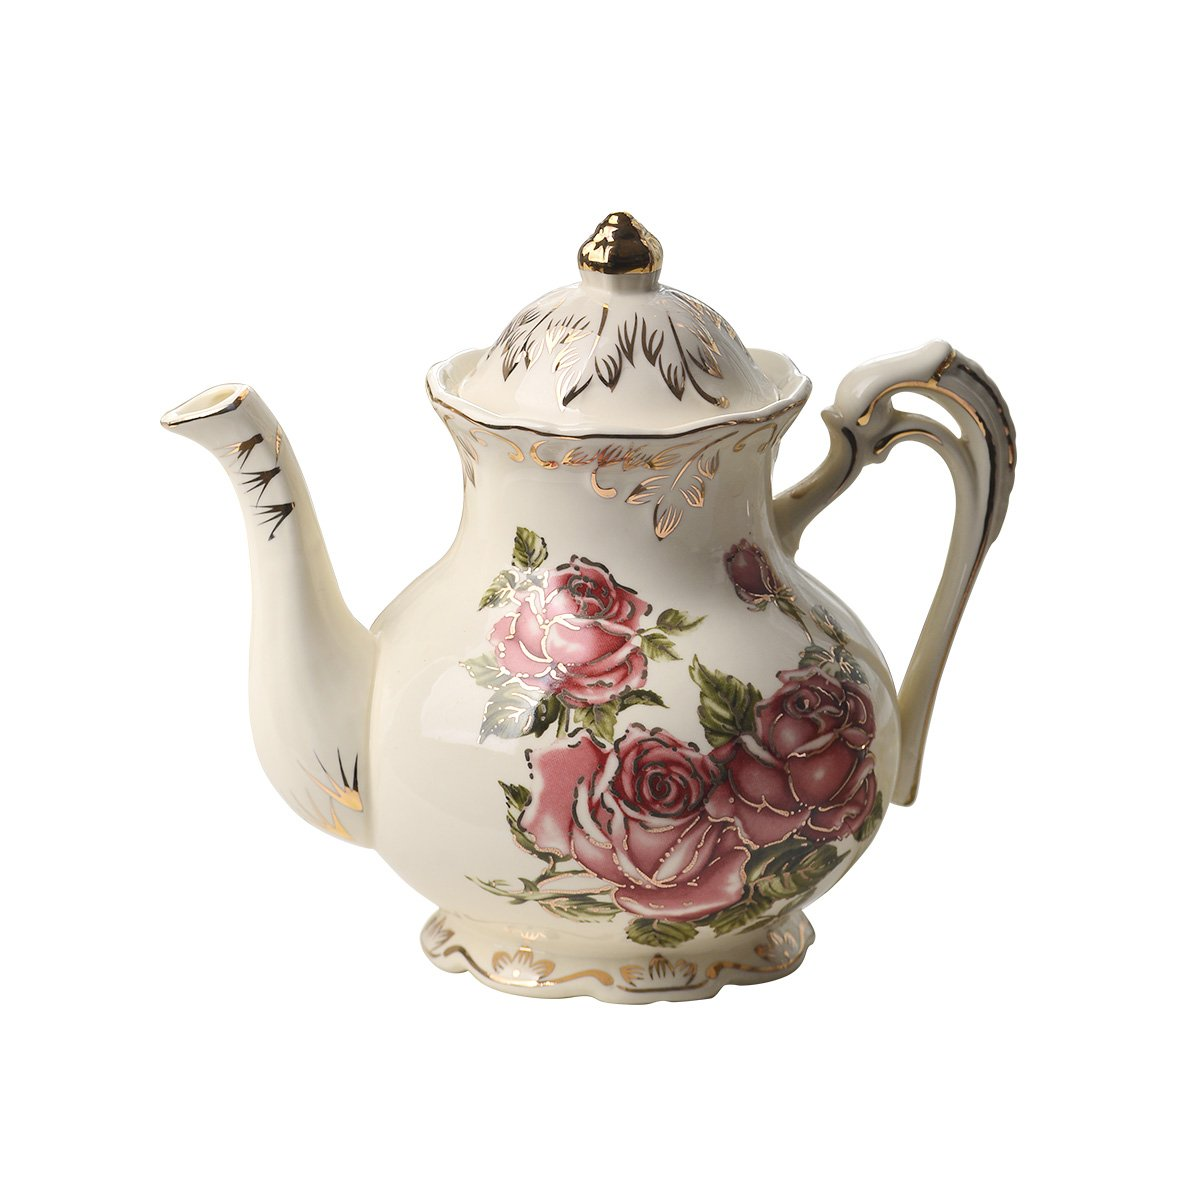 Red Rose Pattern Ivory Ceramic Vintage Tea Pot With Golden Leaves Edge,29oz,Ladyrose Gifts Idea